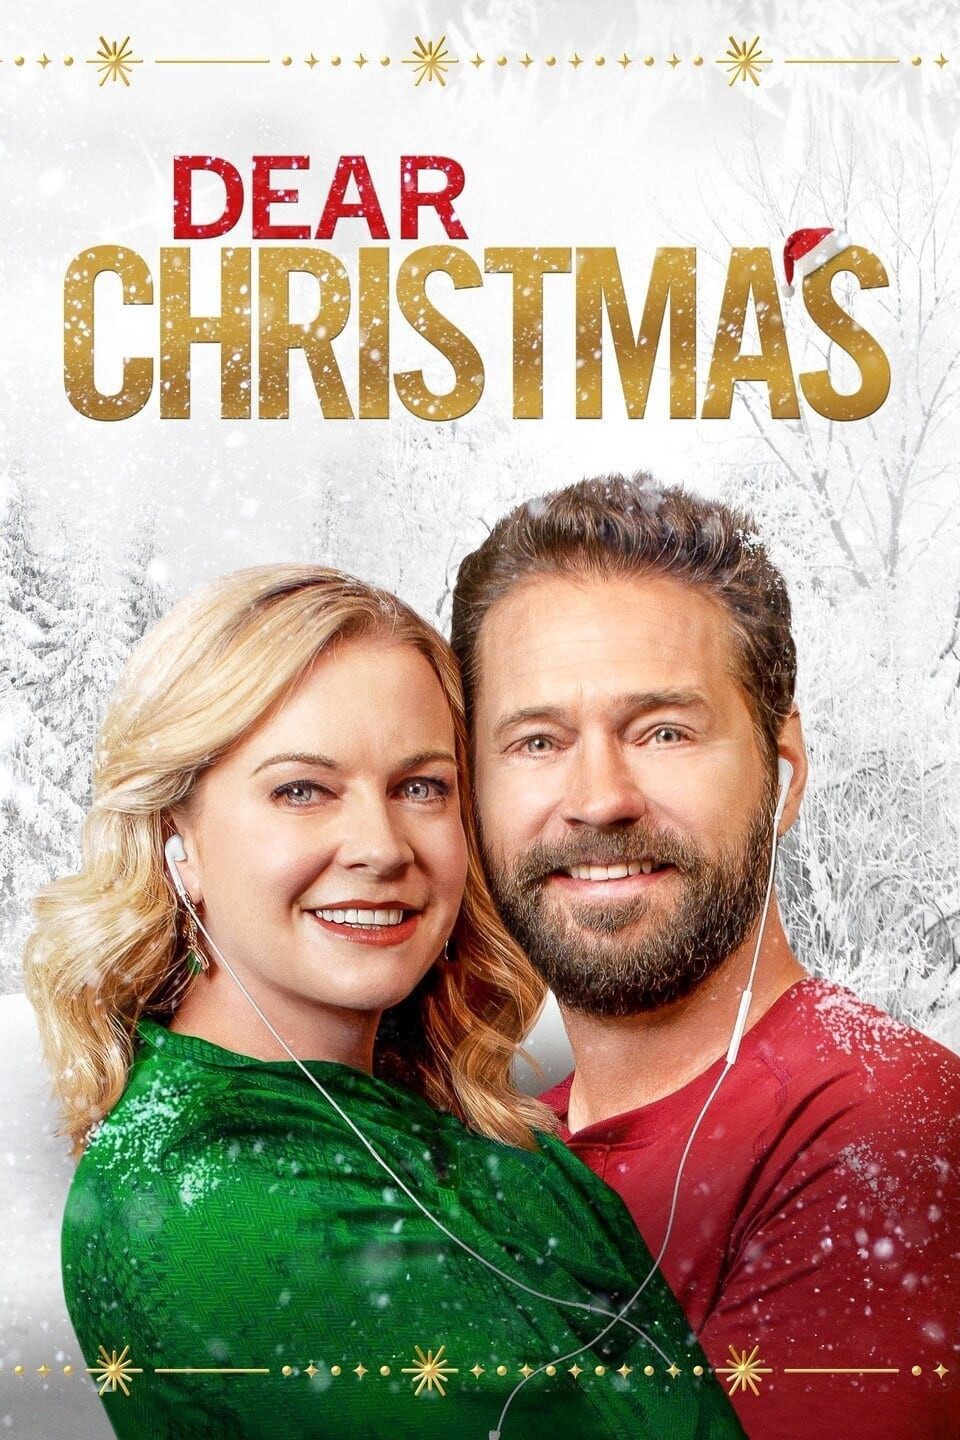 """Movie poster for Lifetime's Dear Christmas, released November 27th, 2020. The poster features Melissa Joan Hart in a green sweater hugging Jason Priestley, wearing a red sweater. They each have one Apple ear but in their ear with the cord meeting between their embrace. They're standing in front of a snow covered forest and the image is overlaid with the words """"Dear CHRISTMAS."""" Flavorlab Sound provided full service audio post production for the film."""